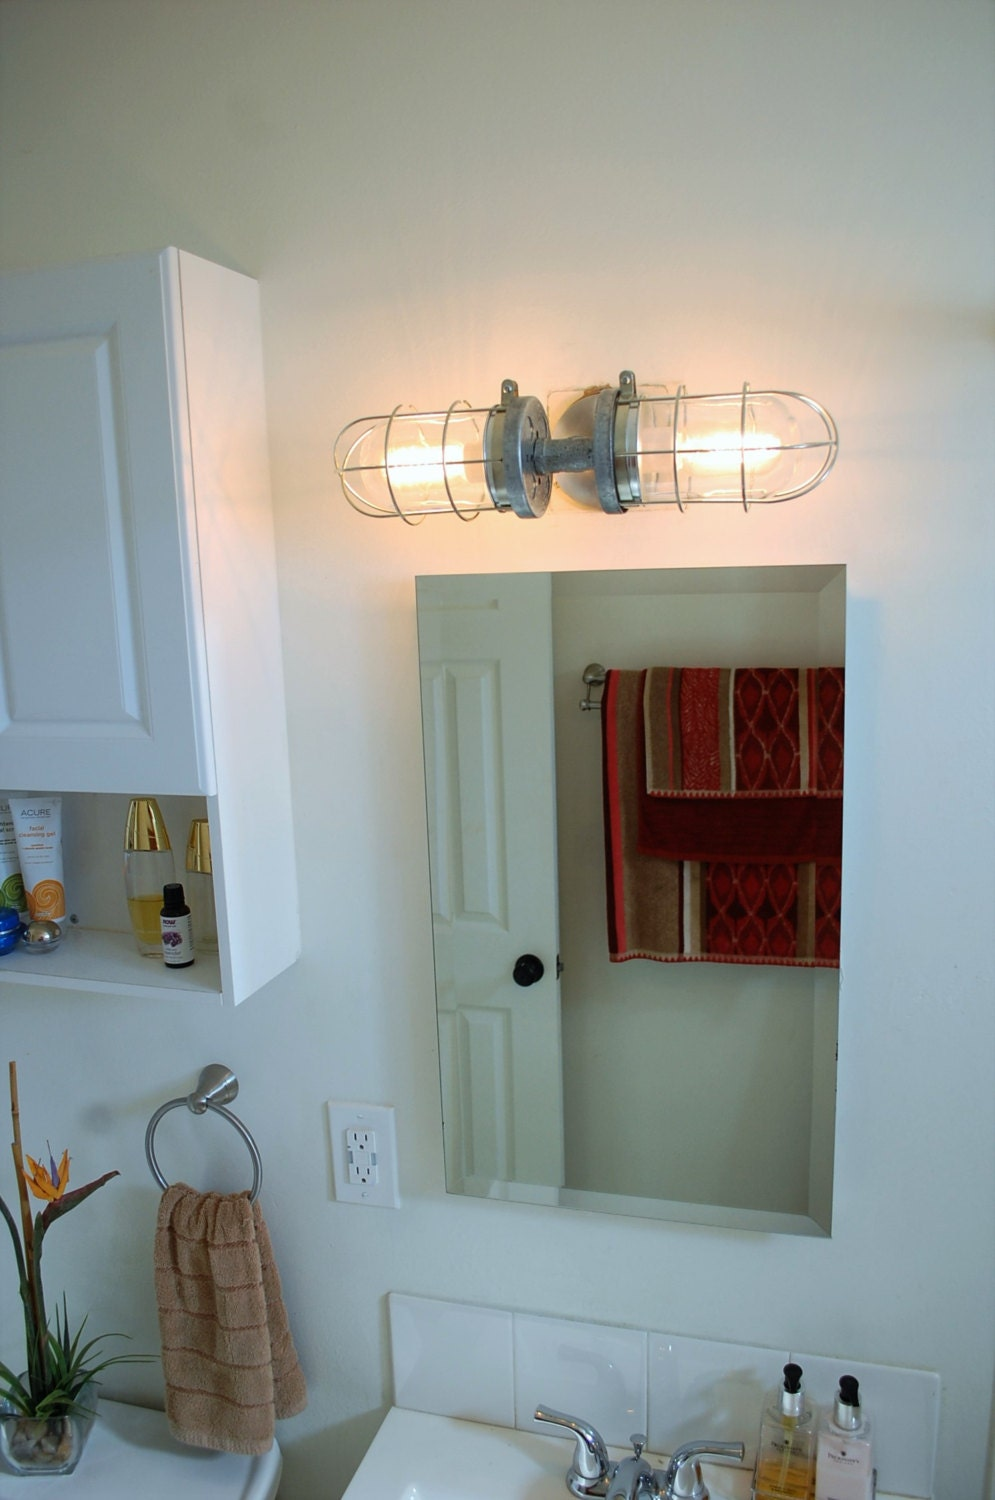 Bathroom Sconce Lighting.  zoom Industrial wall sconce bathroom light double cage